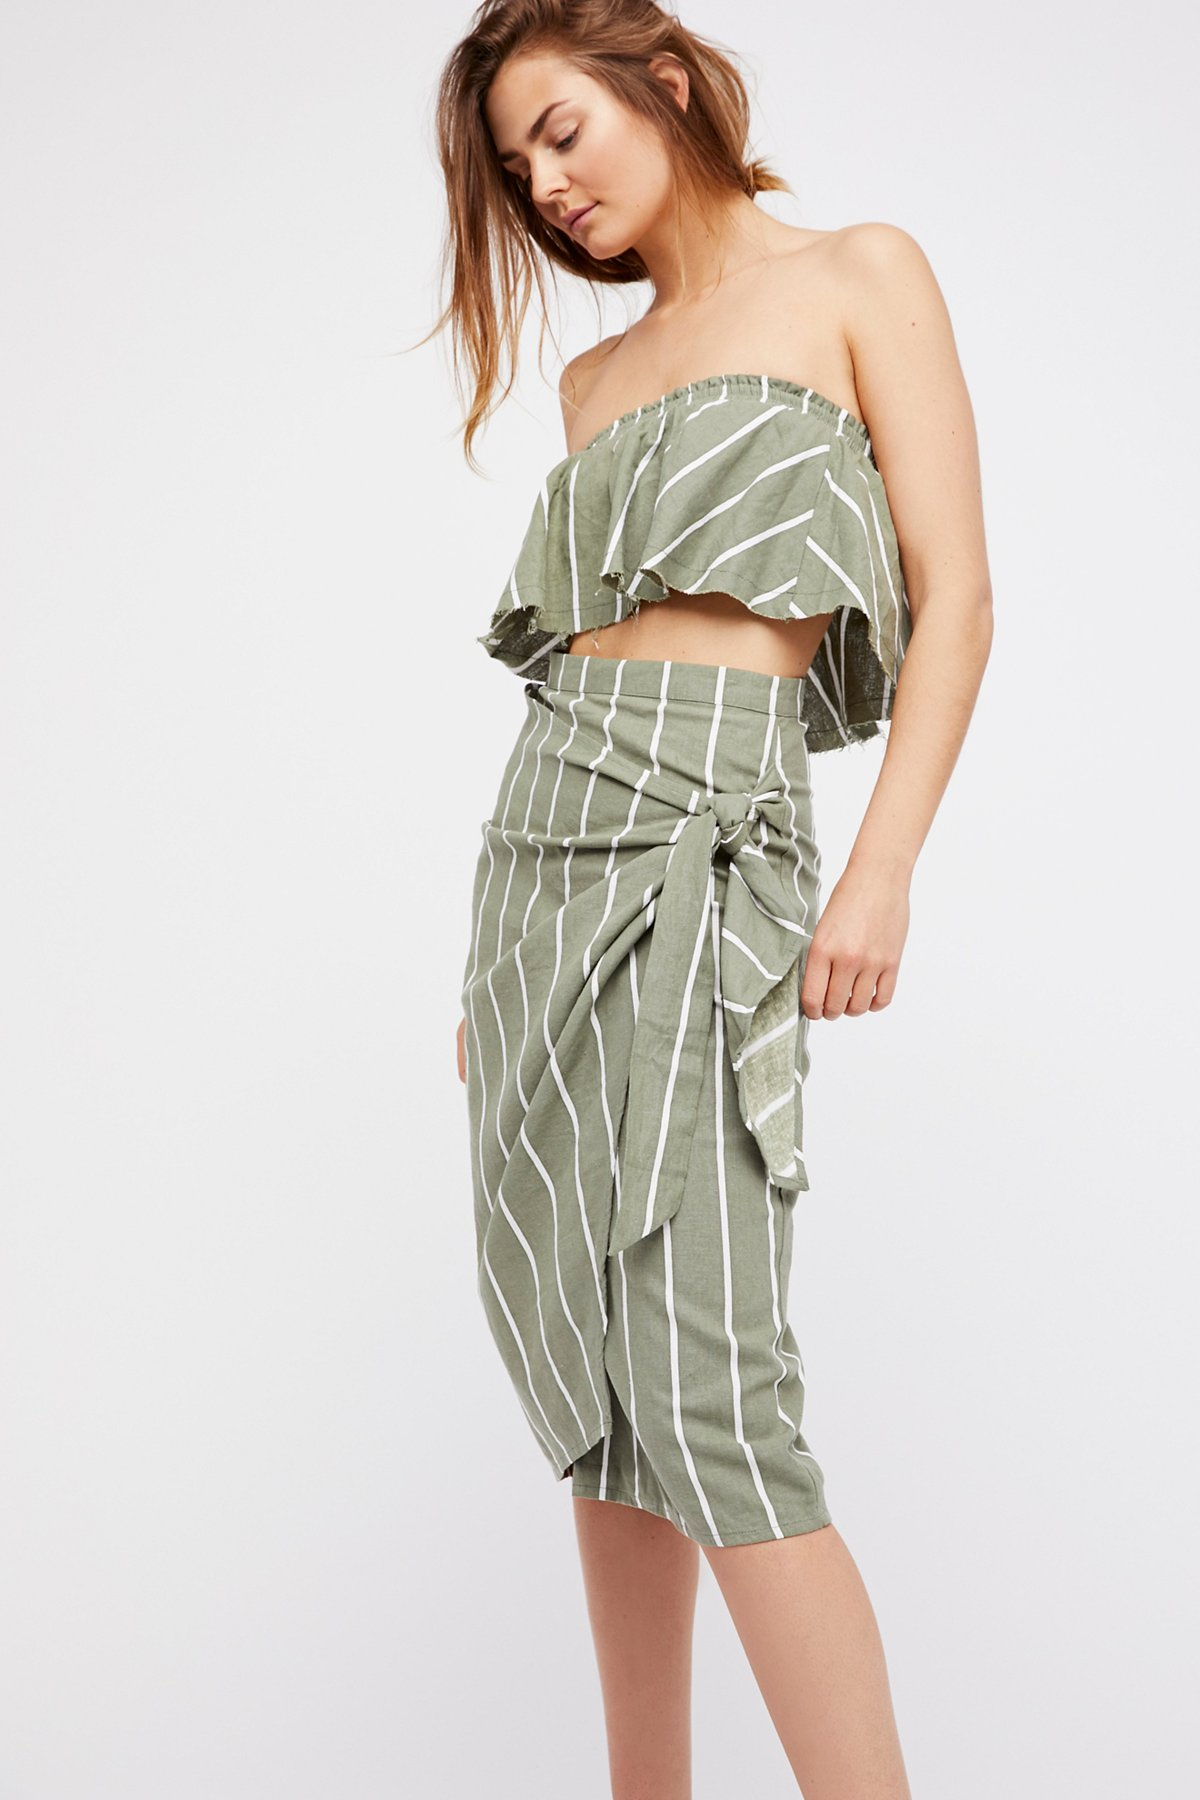 Suns Out Co-Ord